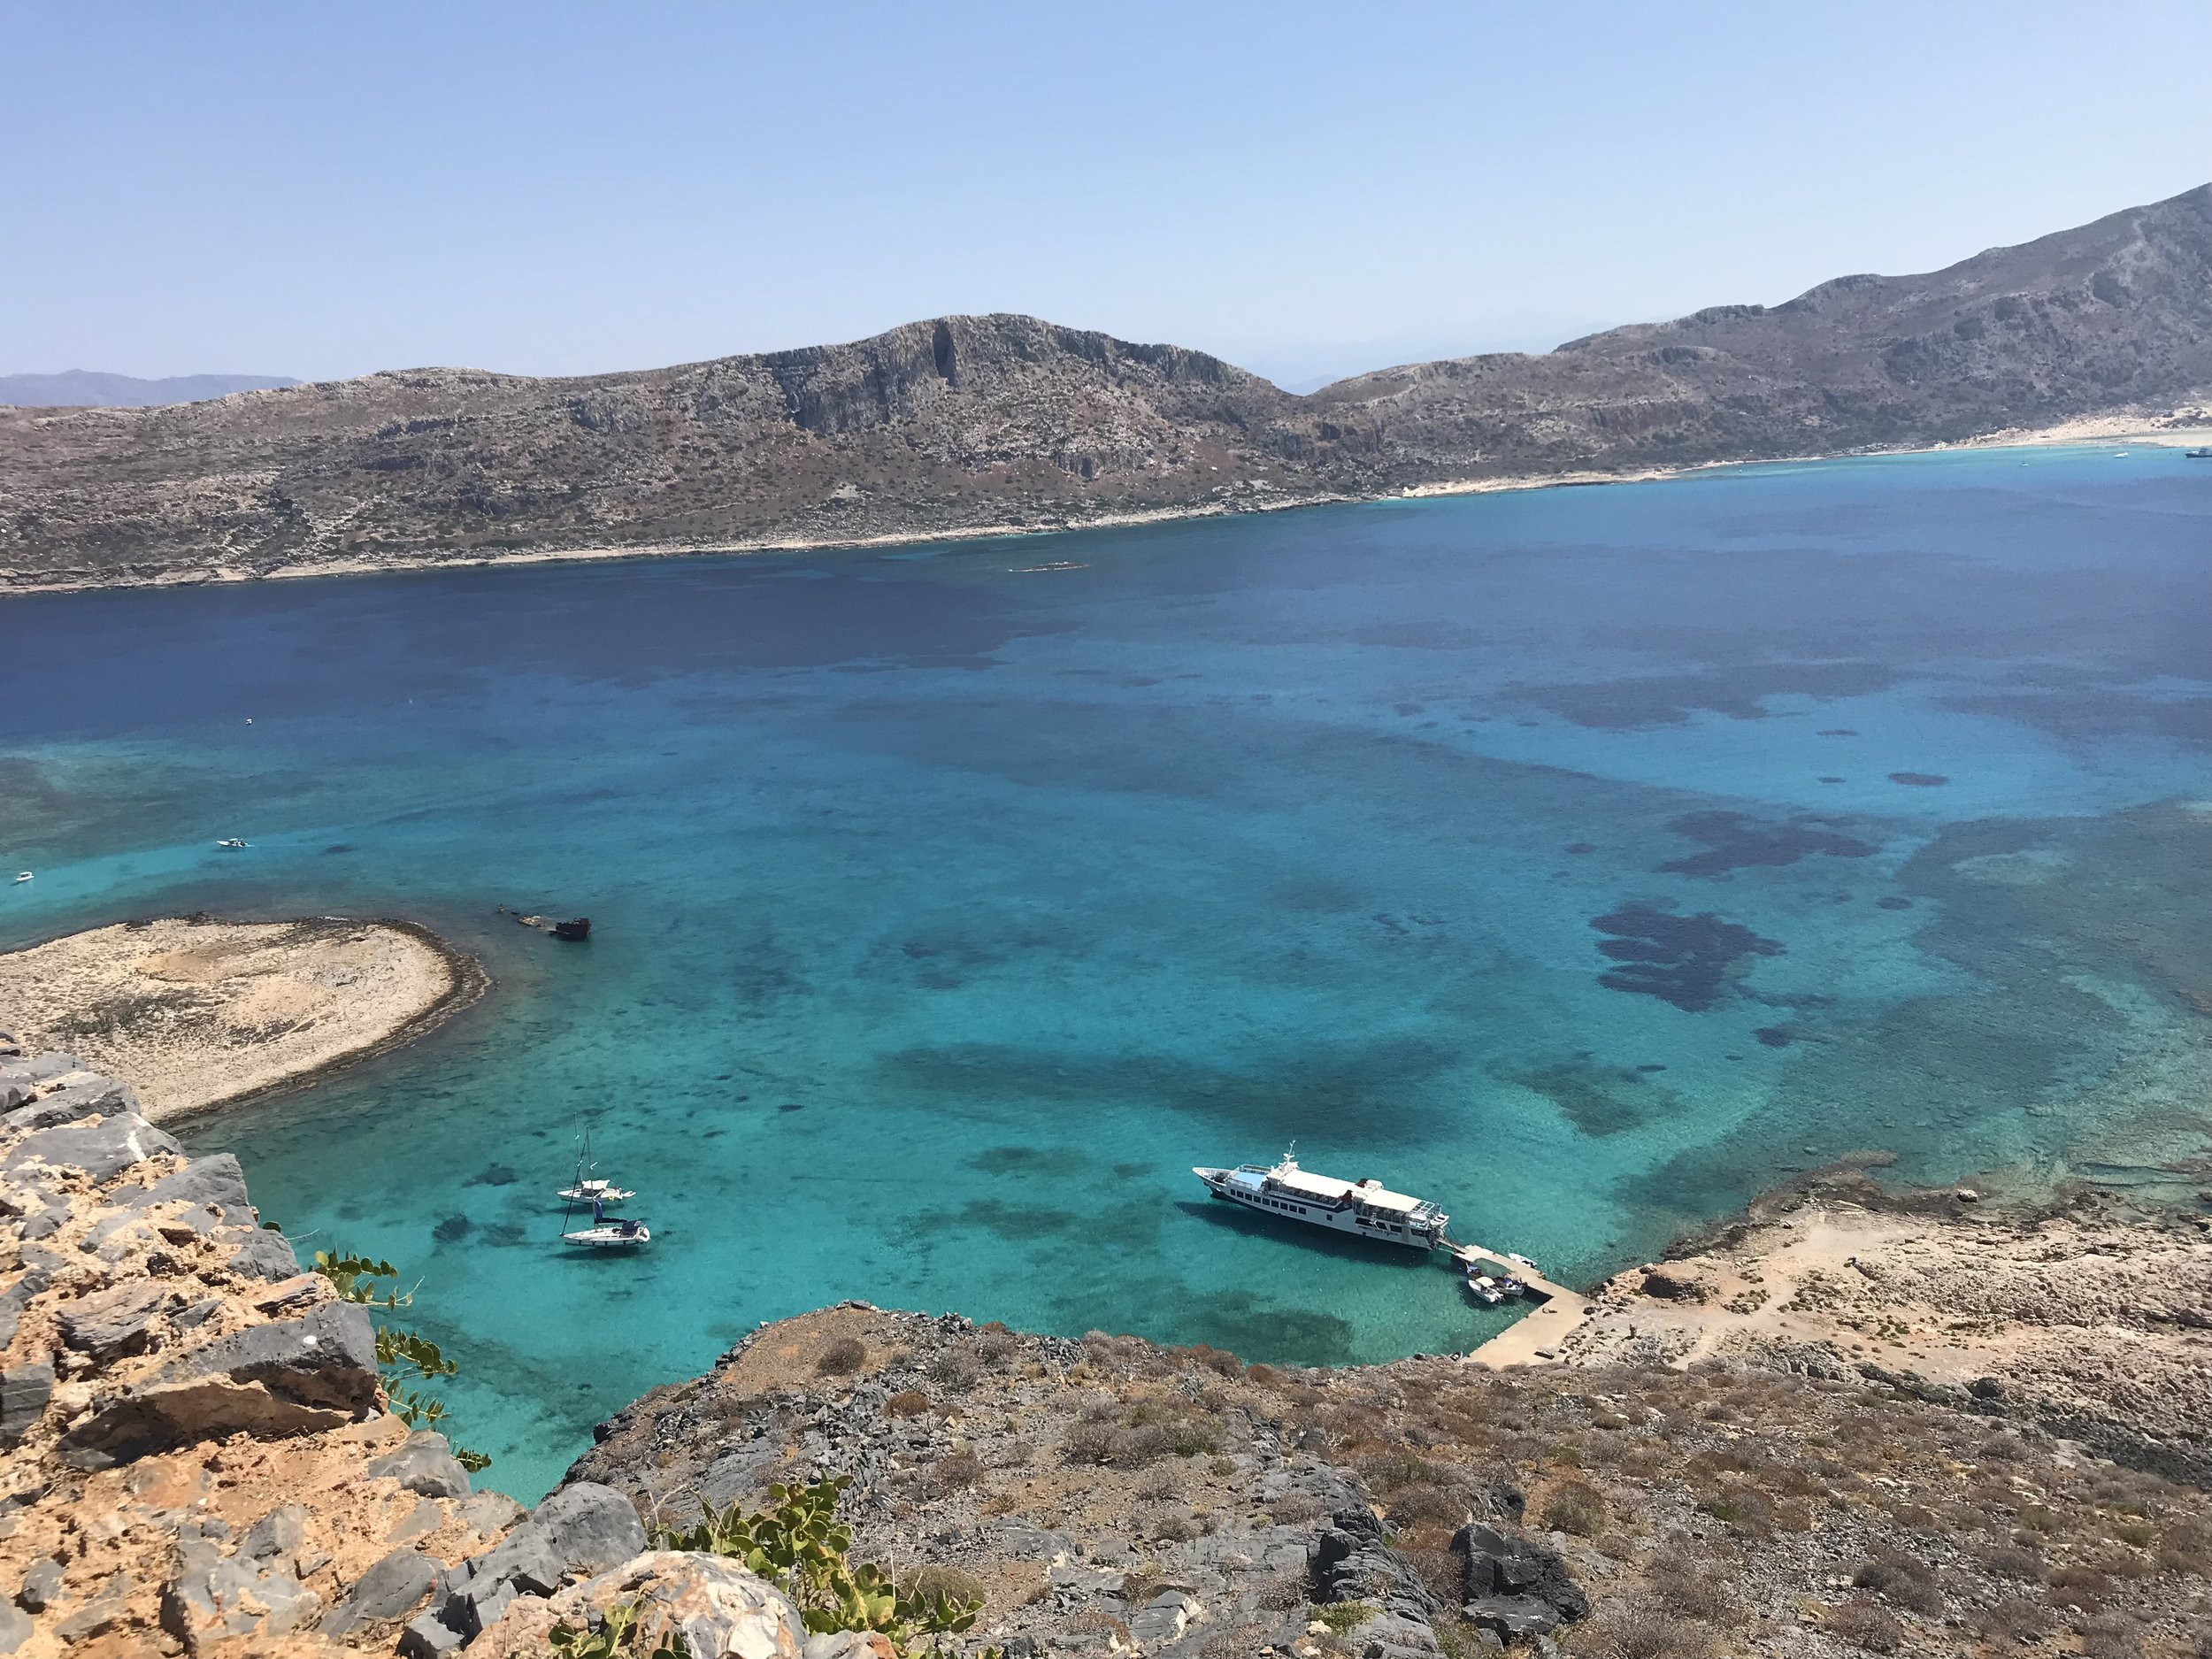 The view from the castle on Gramvousa with the Balos lagoon in the top right corner